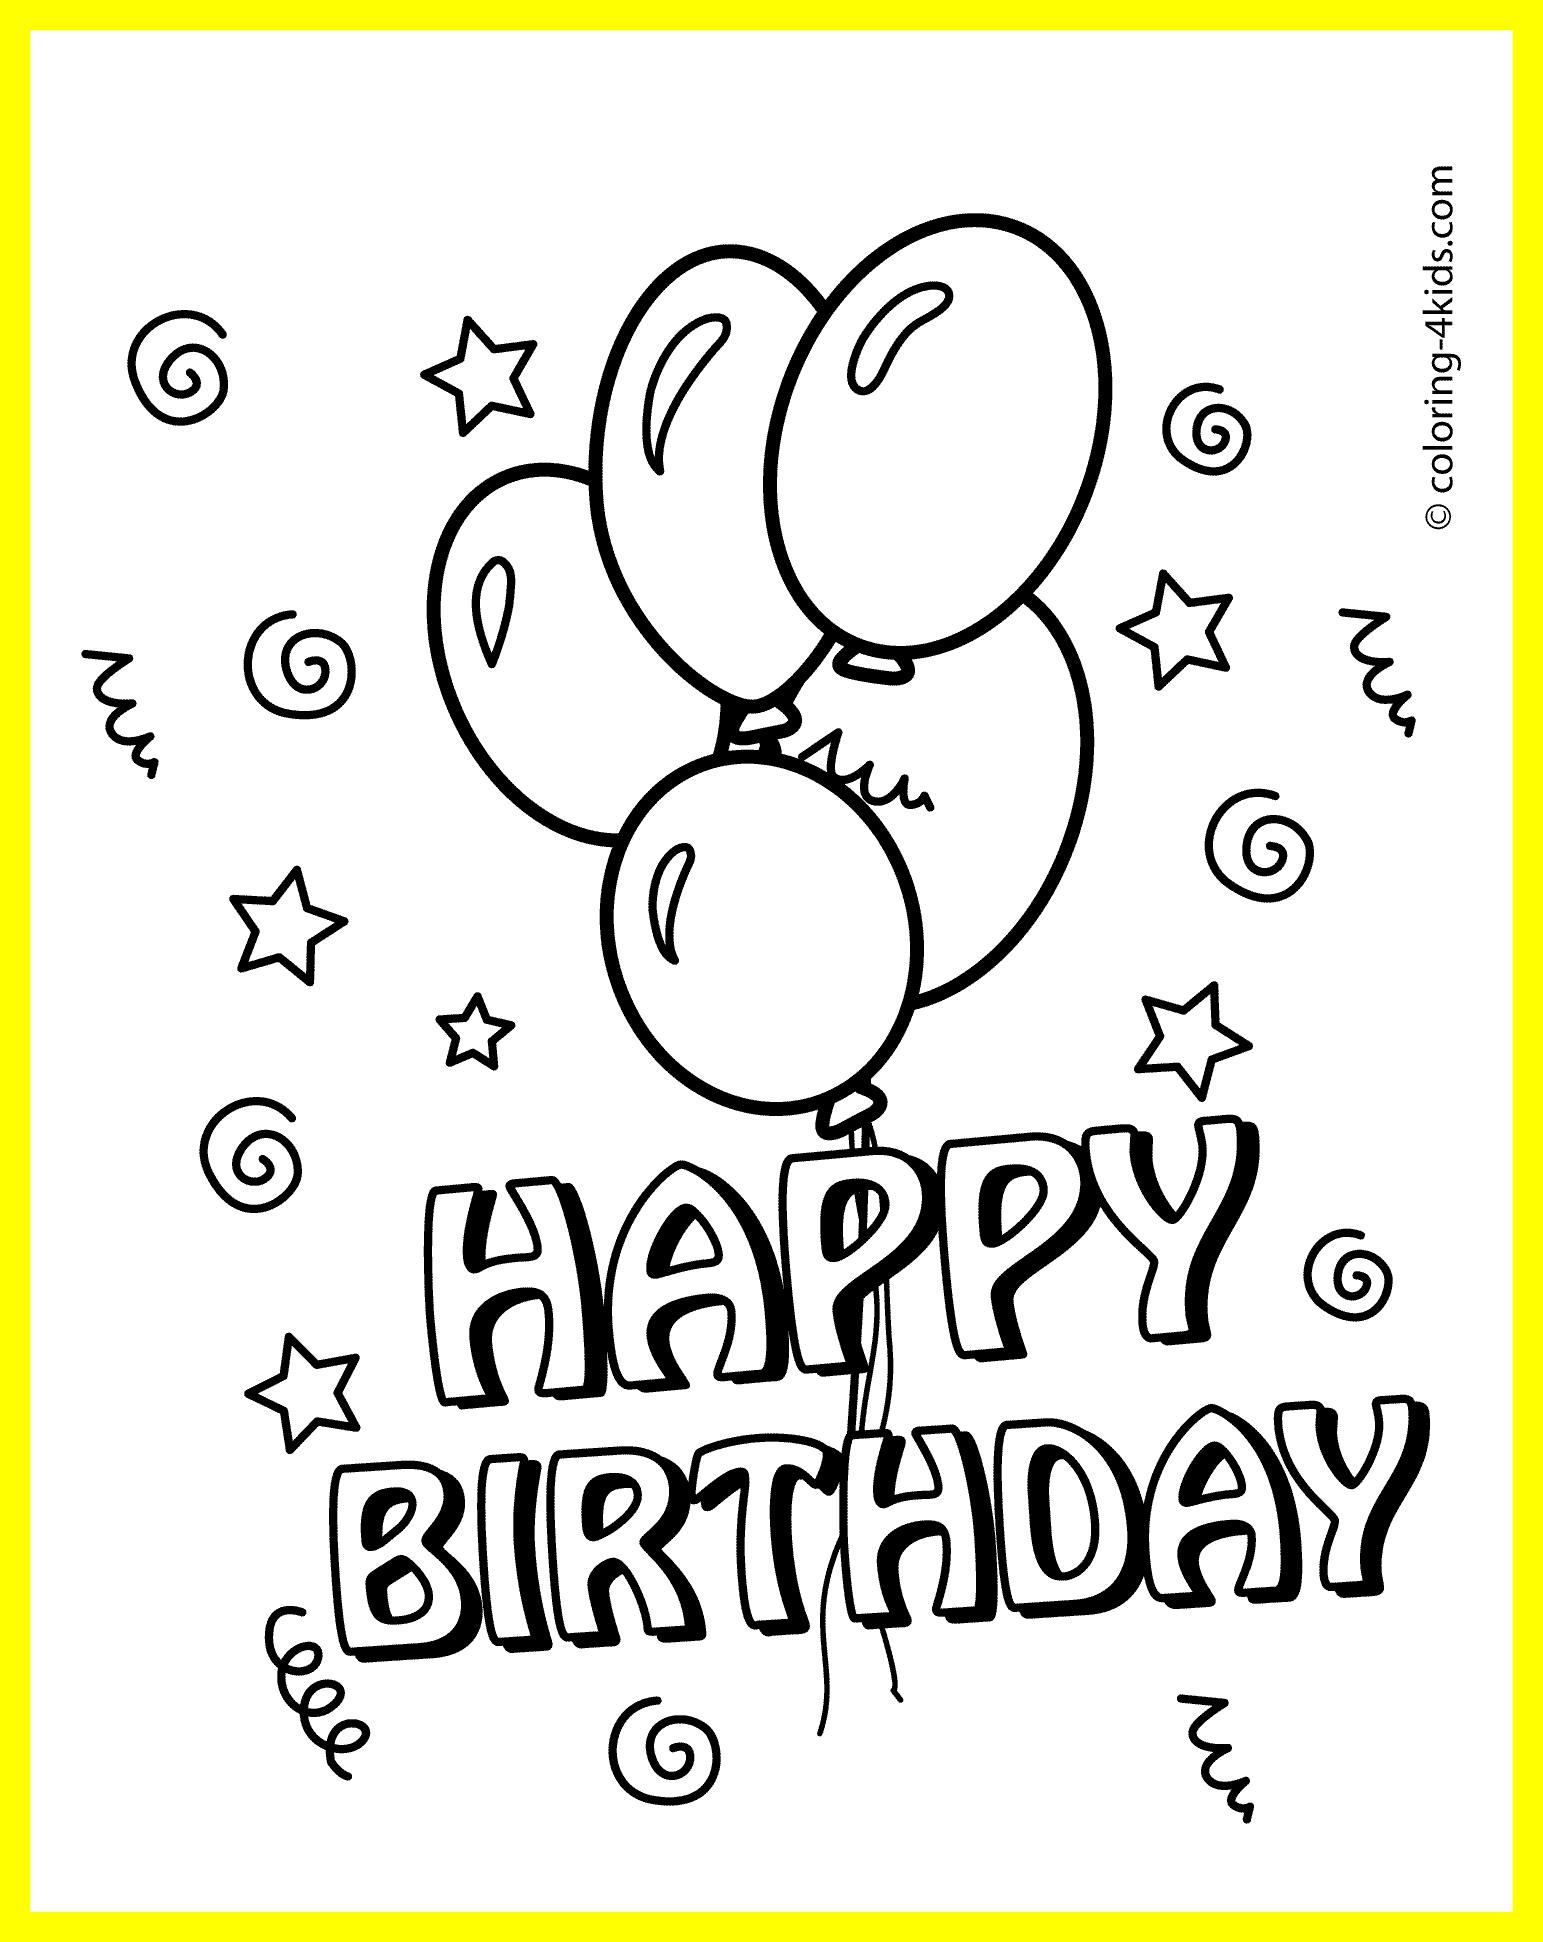 personalized birthday coloring pages ; amazing-happy-birthday-coloring-pages-practical-pict-of-personalized-inspiration-and-banner-trend